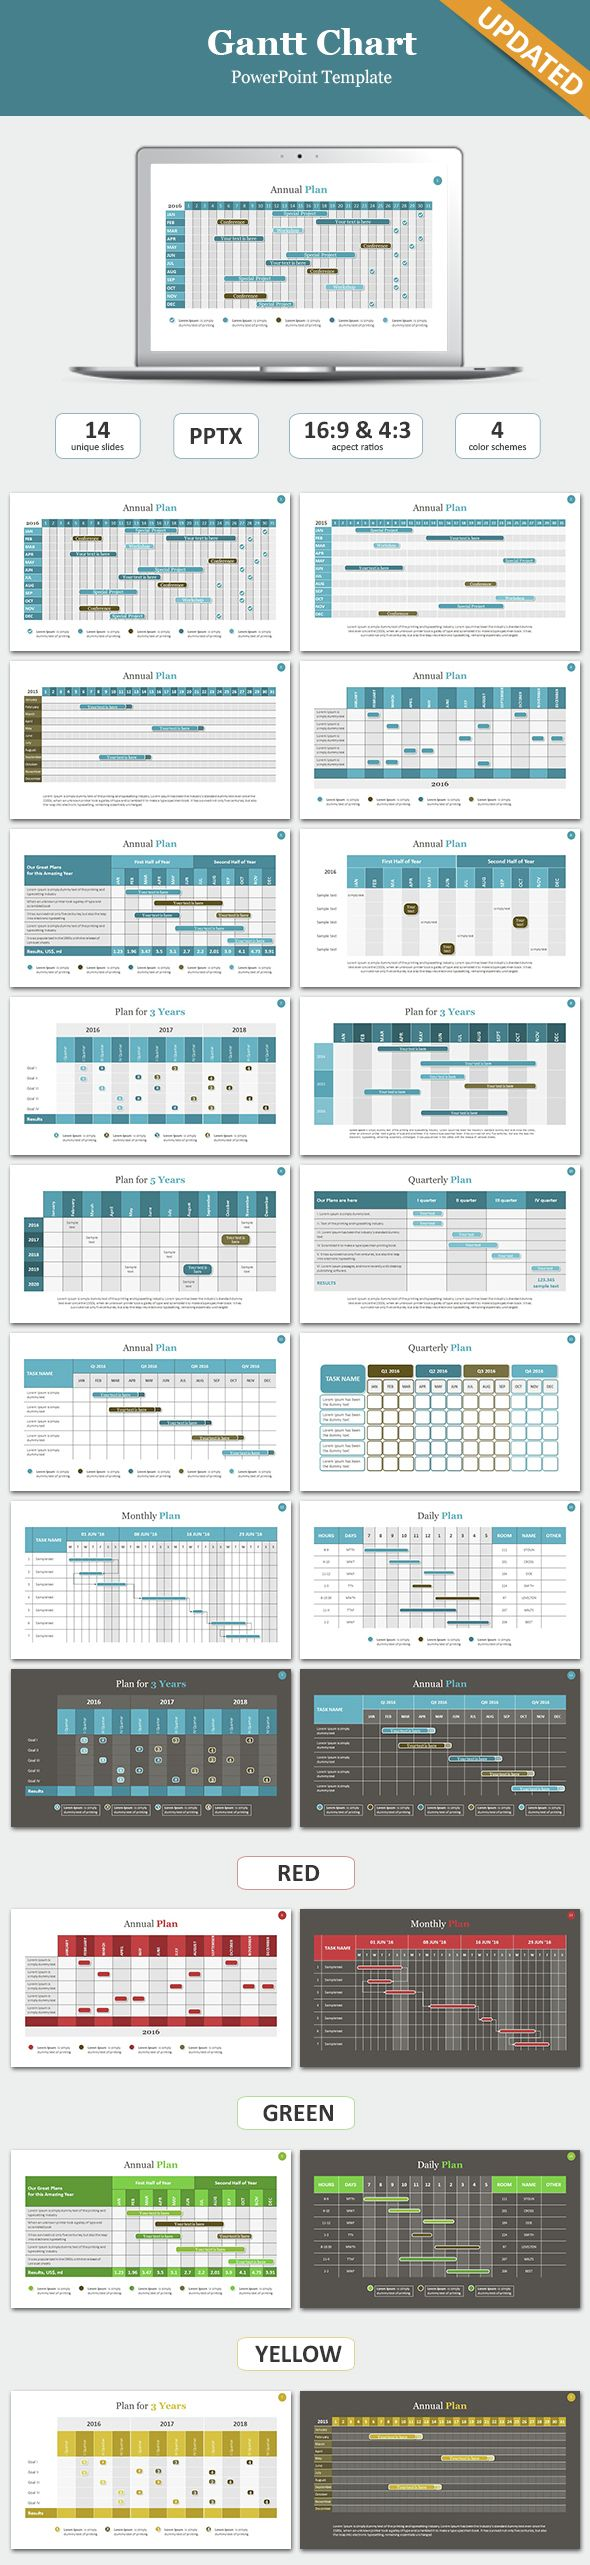 Gantt Chart PowerPoint Template   Presentation templates  Chart and     Gantt Chart PowerPoint Template   PowerPoint Templates Presentation  Templates